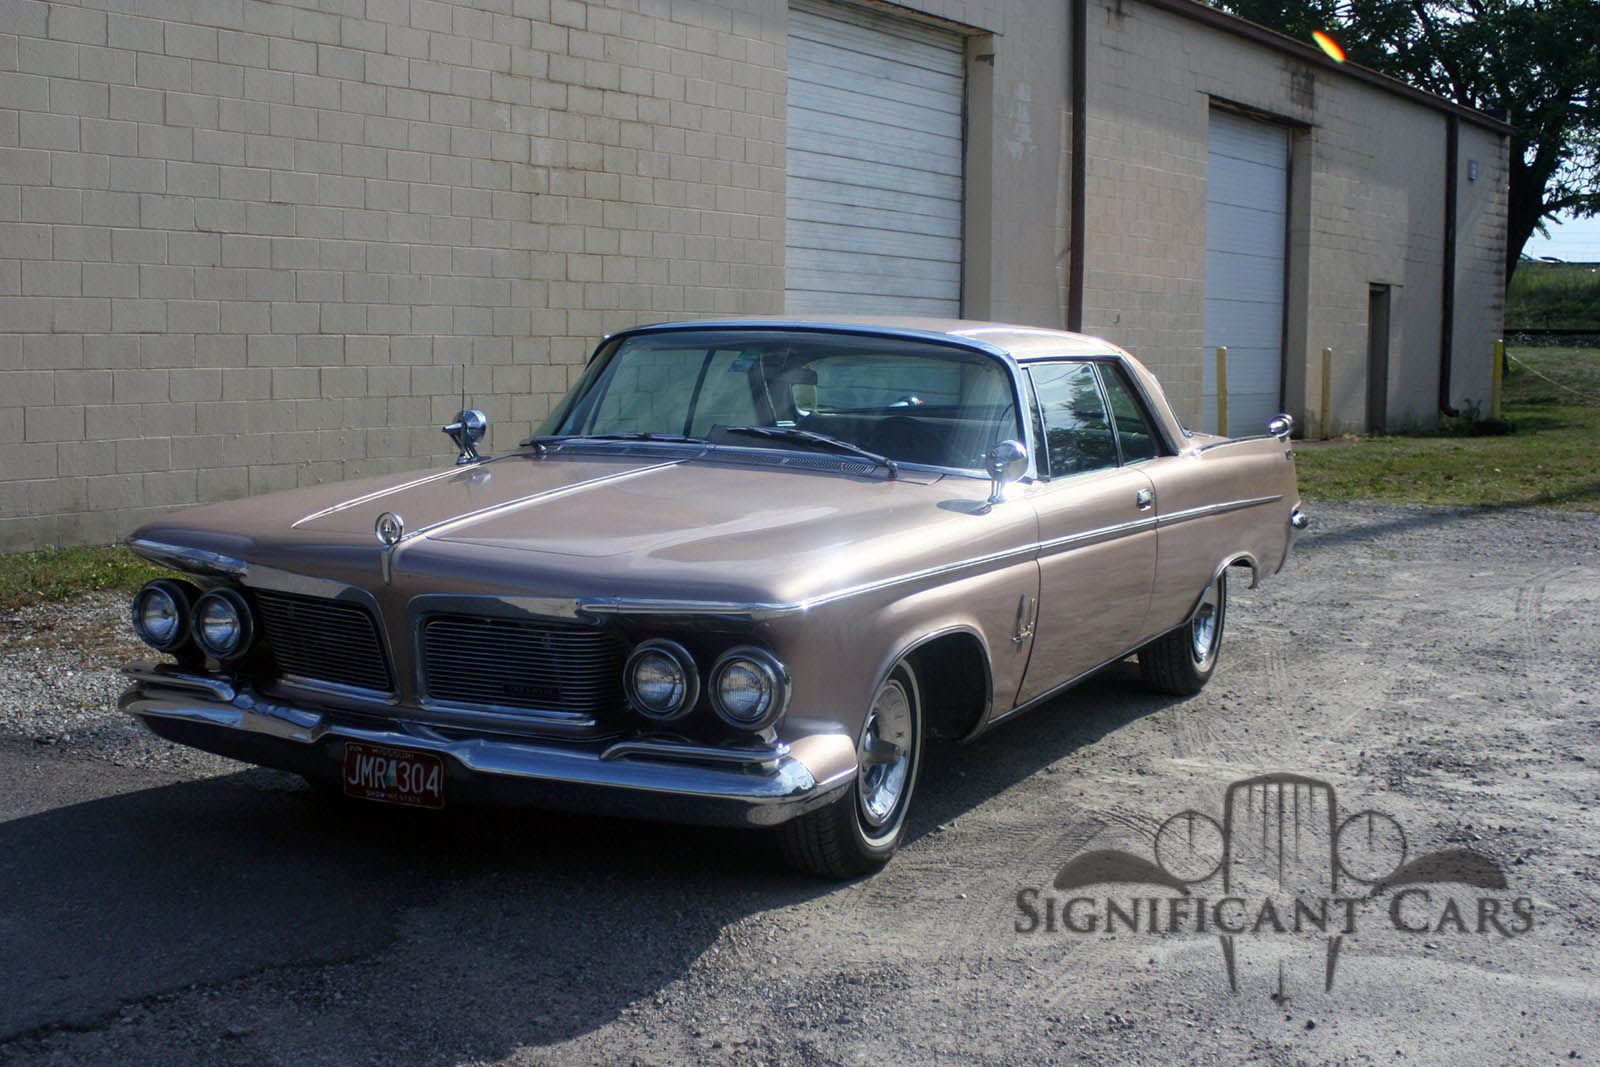 1962 Imperial Significant Cars Inc Chrysler Imperial